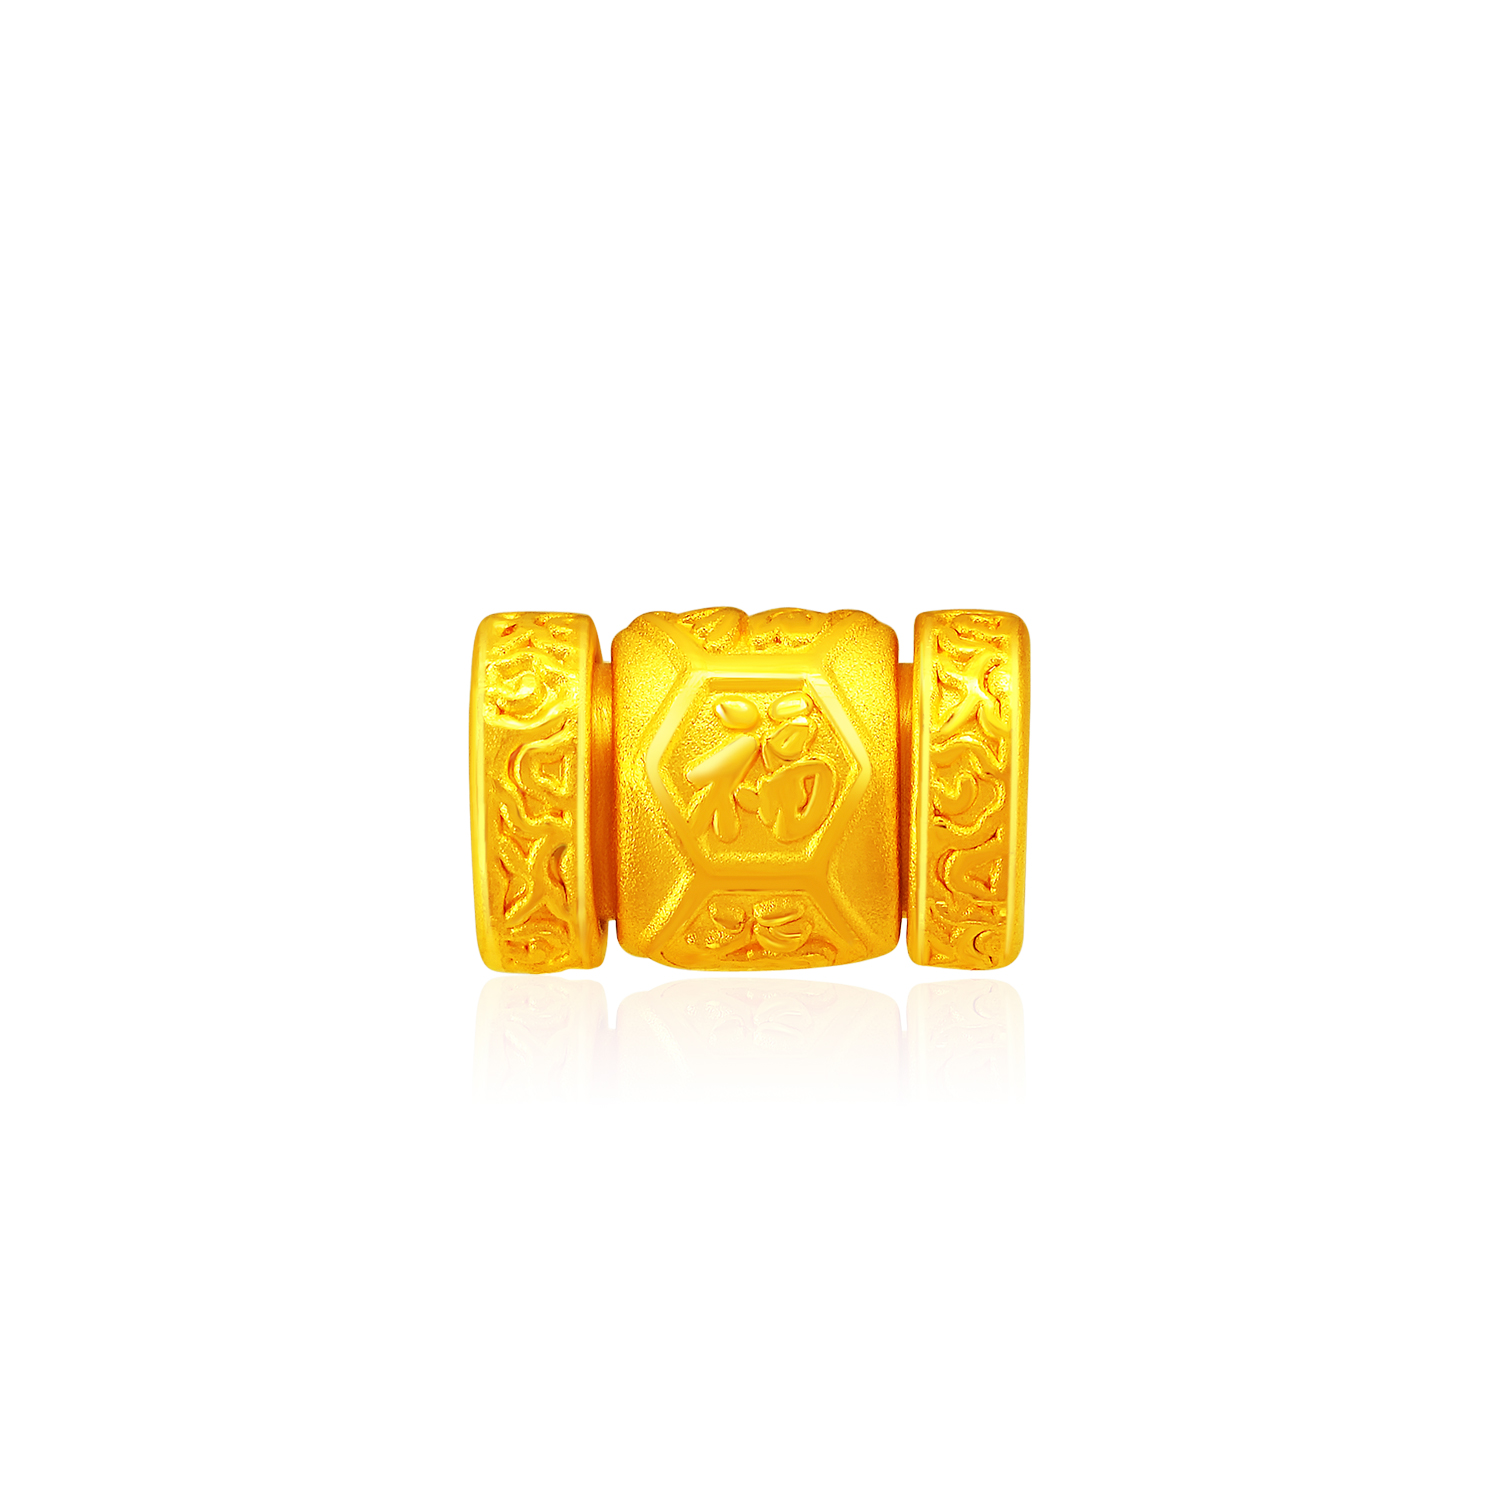 Fortune-Go-Round 999 Pure Gold Bracelet Charm